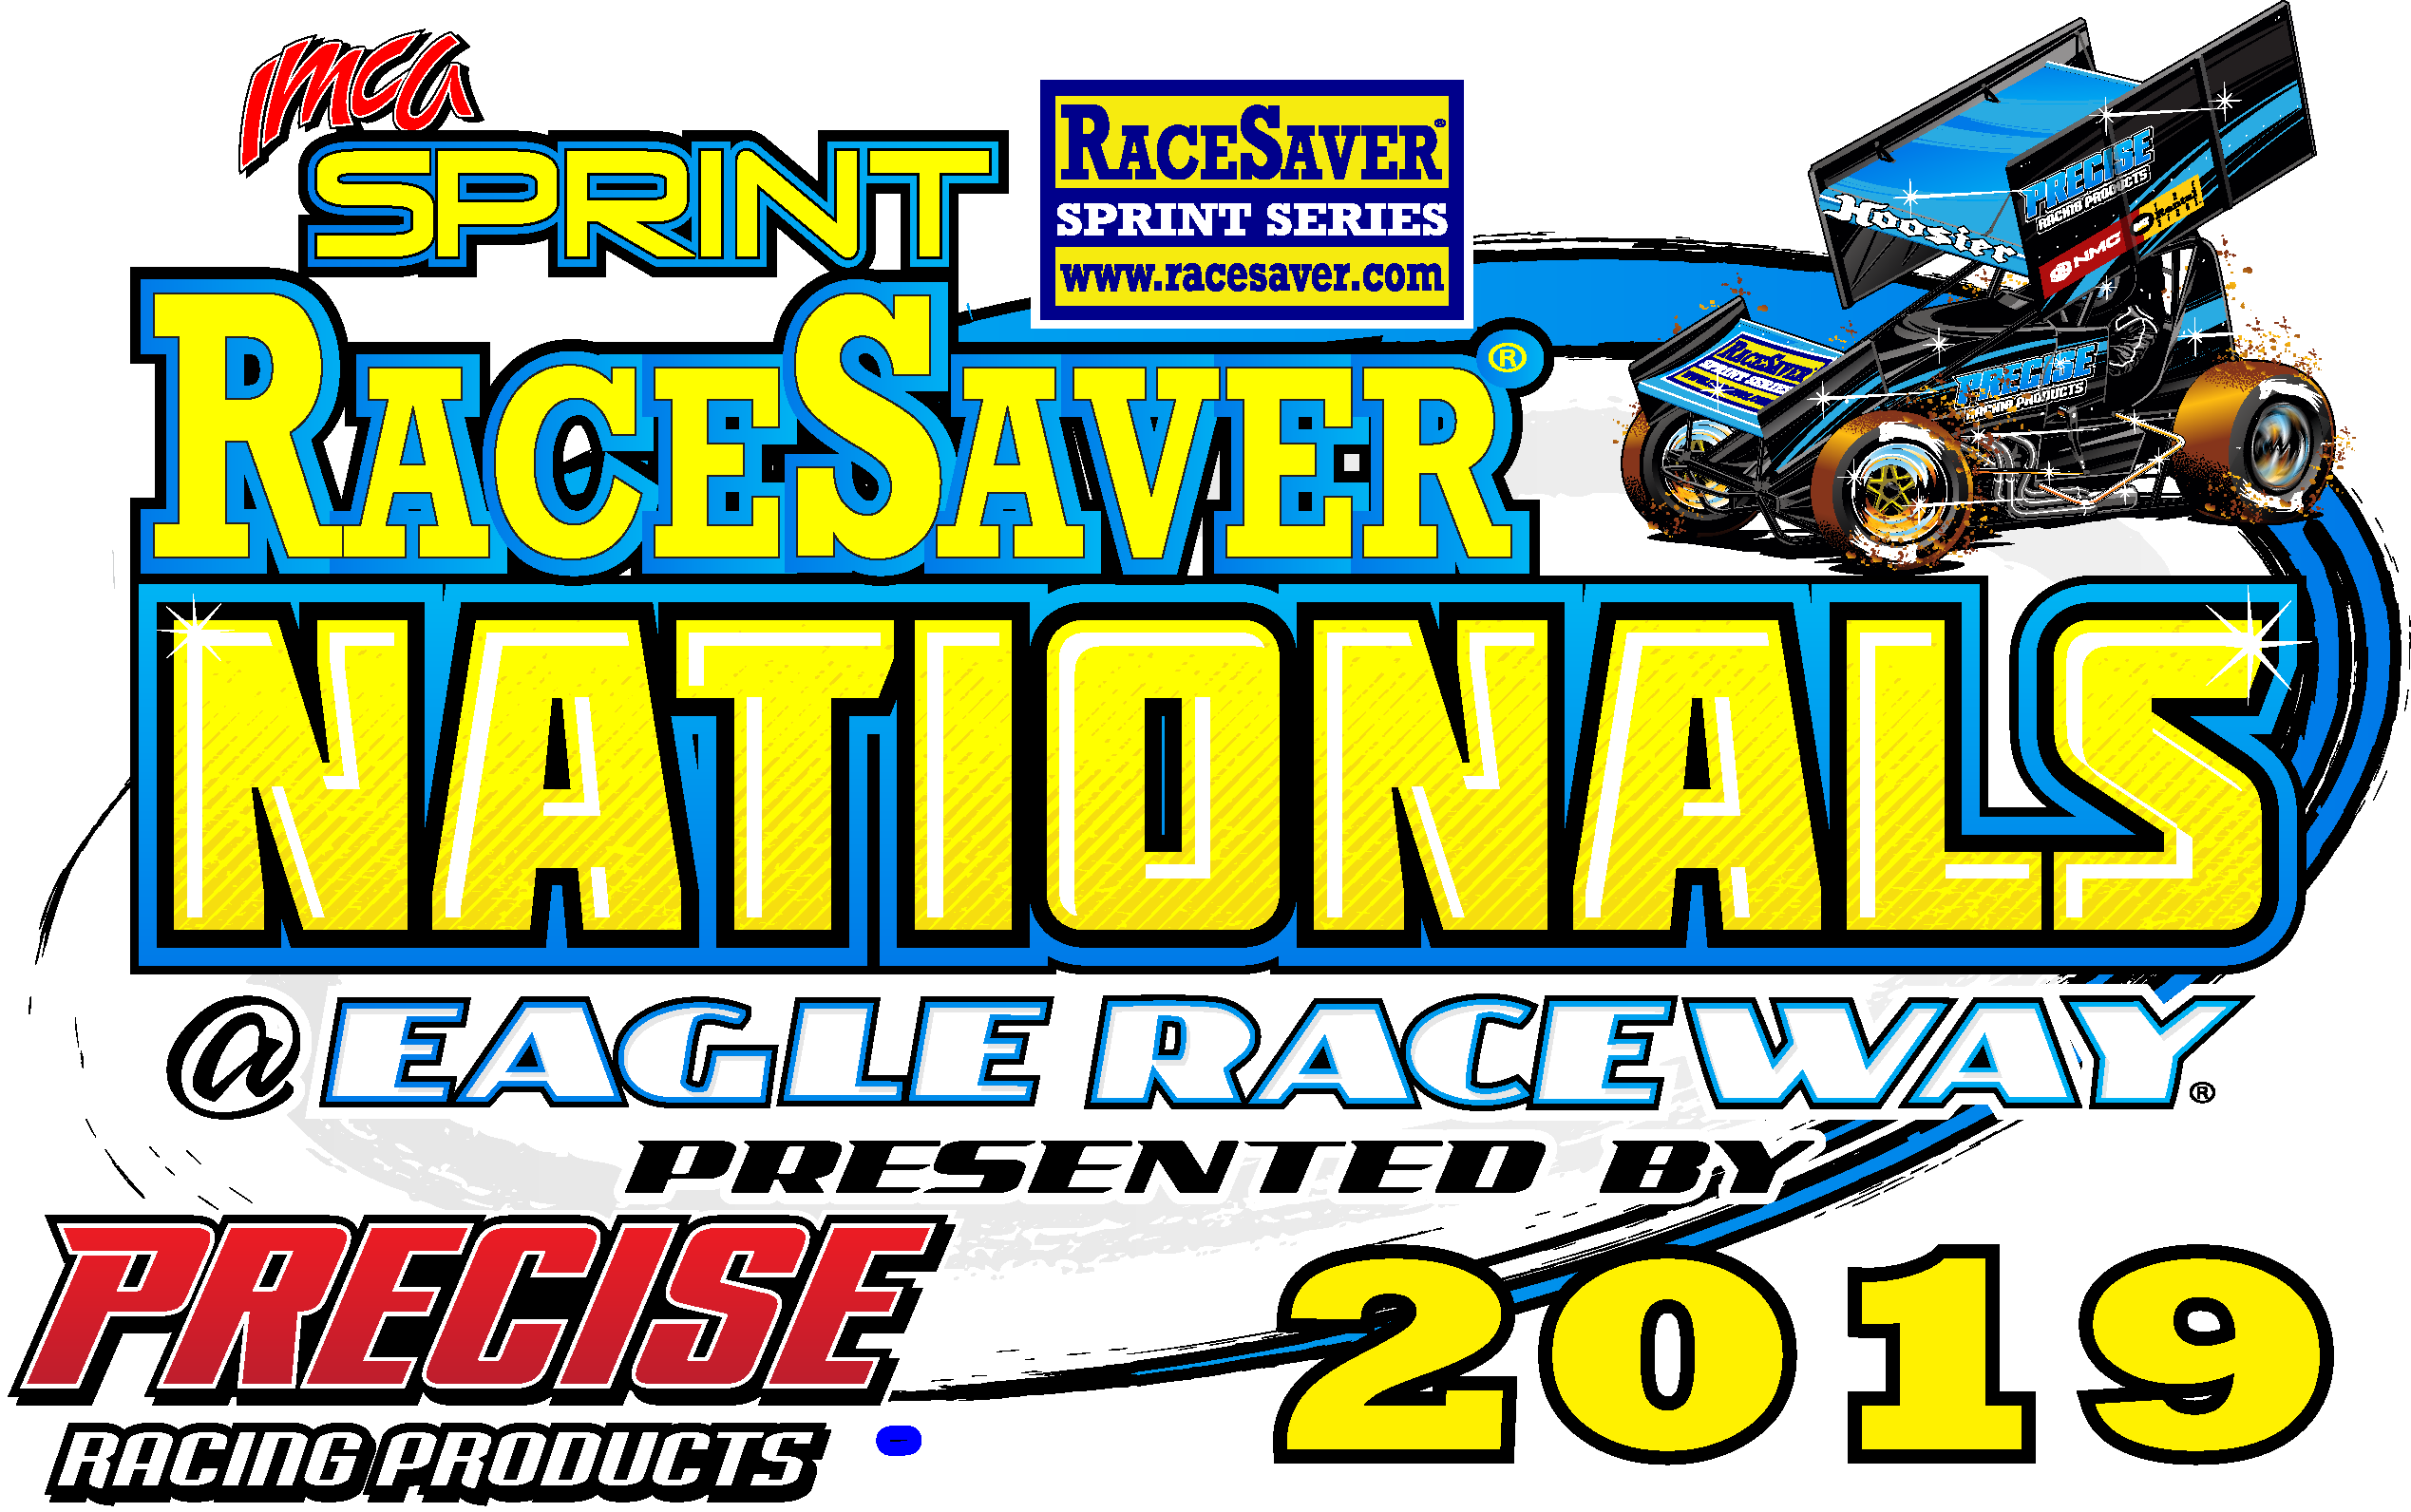 RaceSaver Nationals kicked off Thursday, More excitement to come on Friday